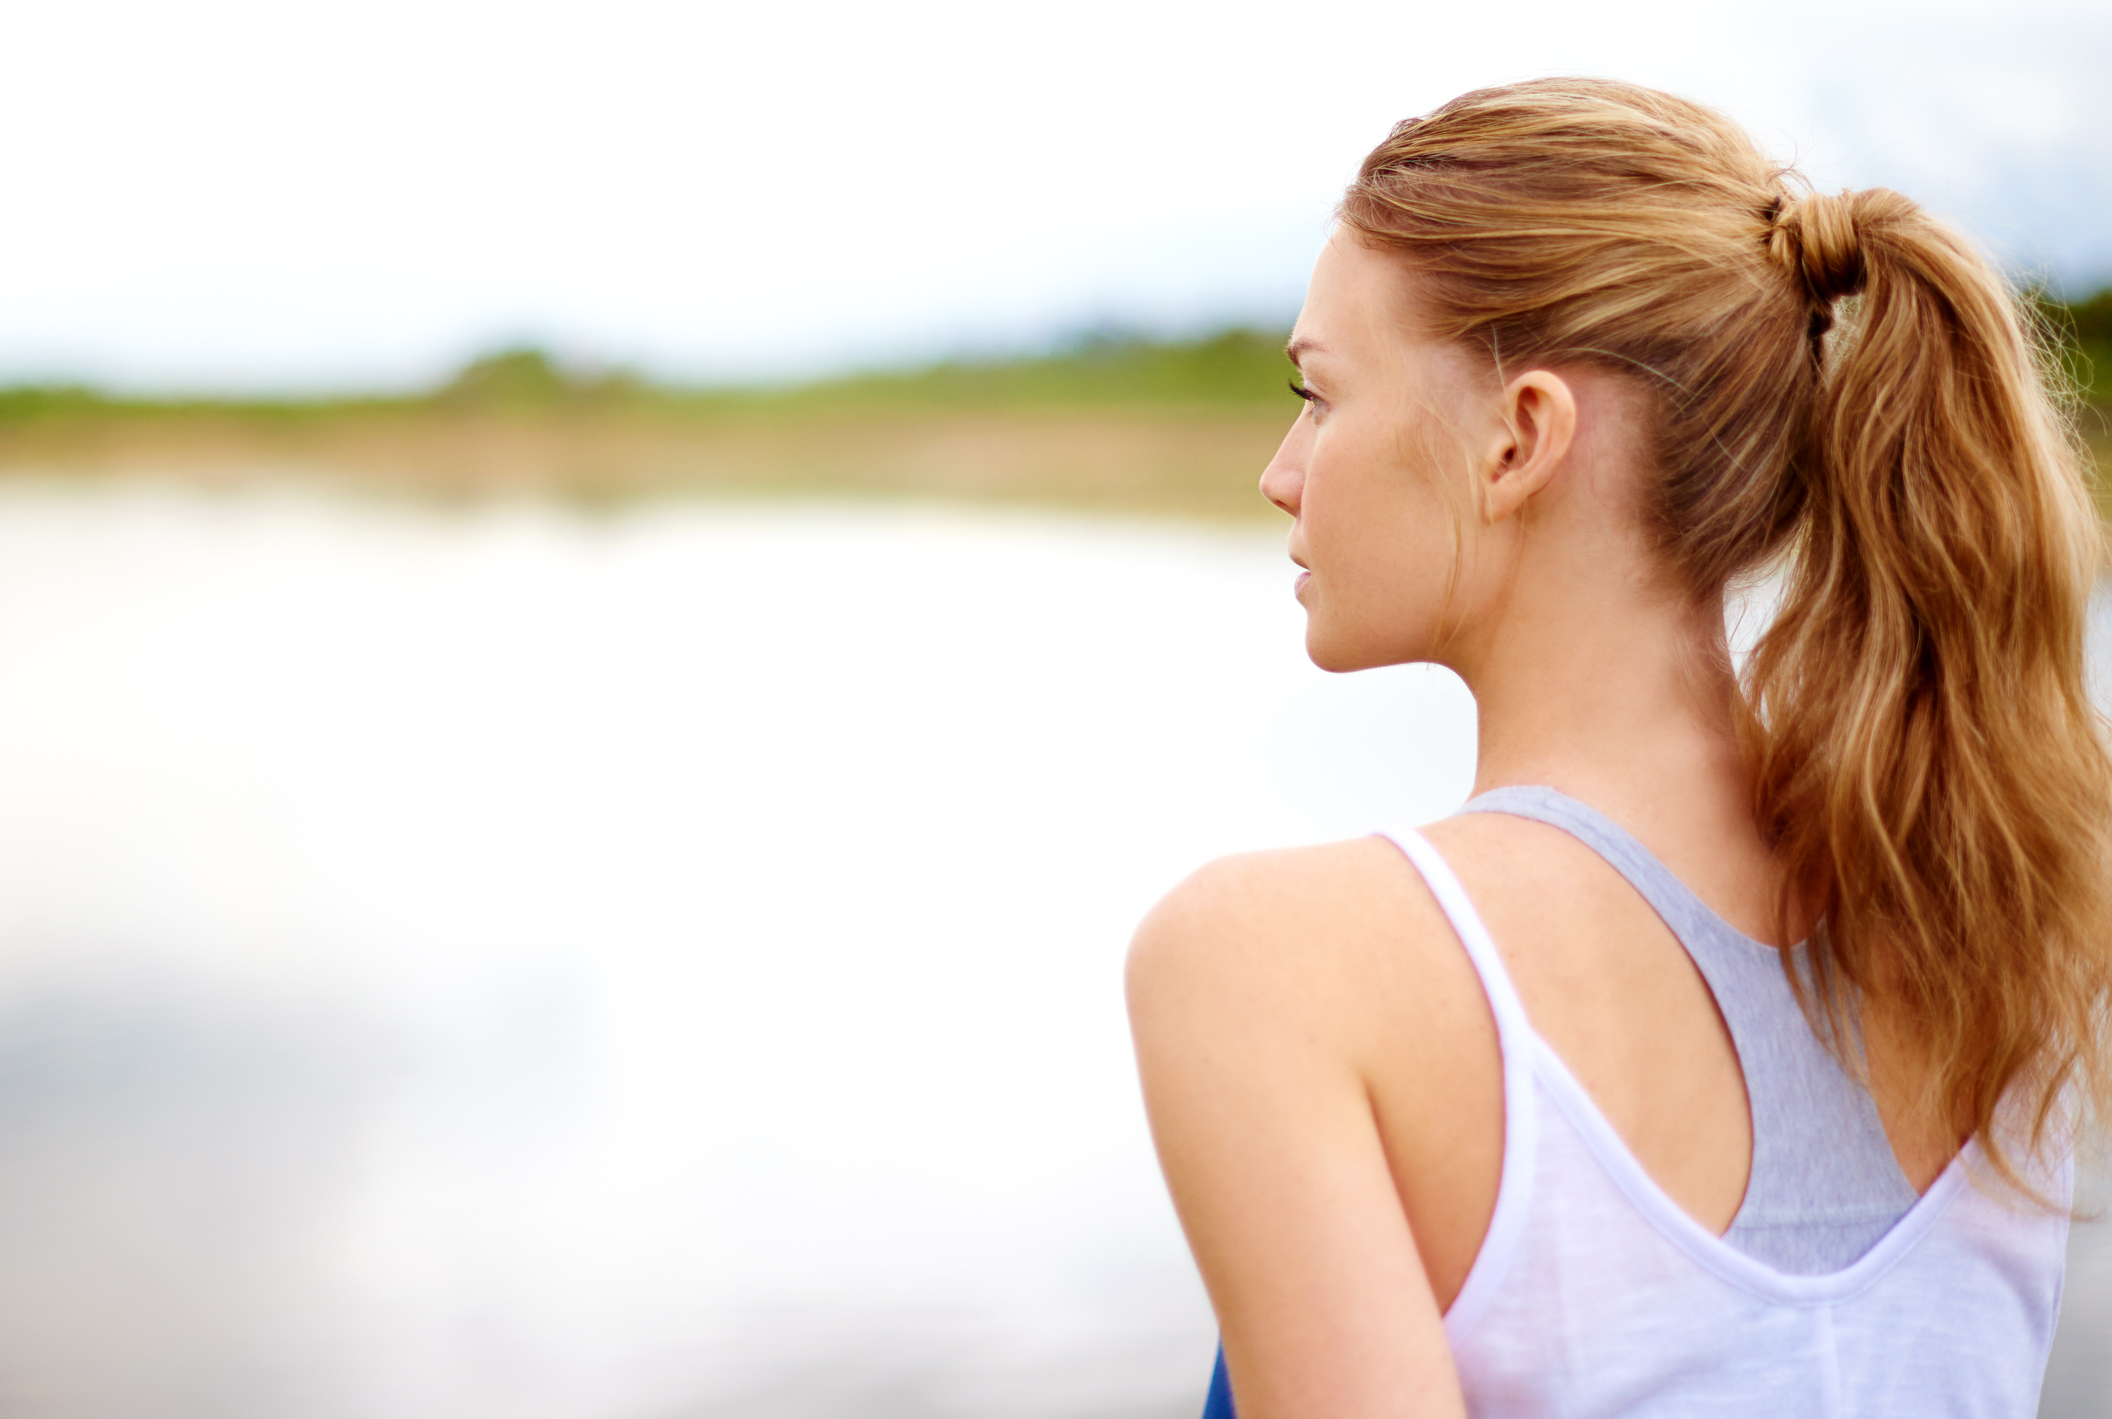 Rearview shot of woman with full ponytail looking out over a body of water